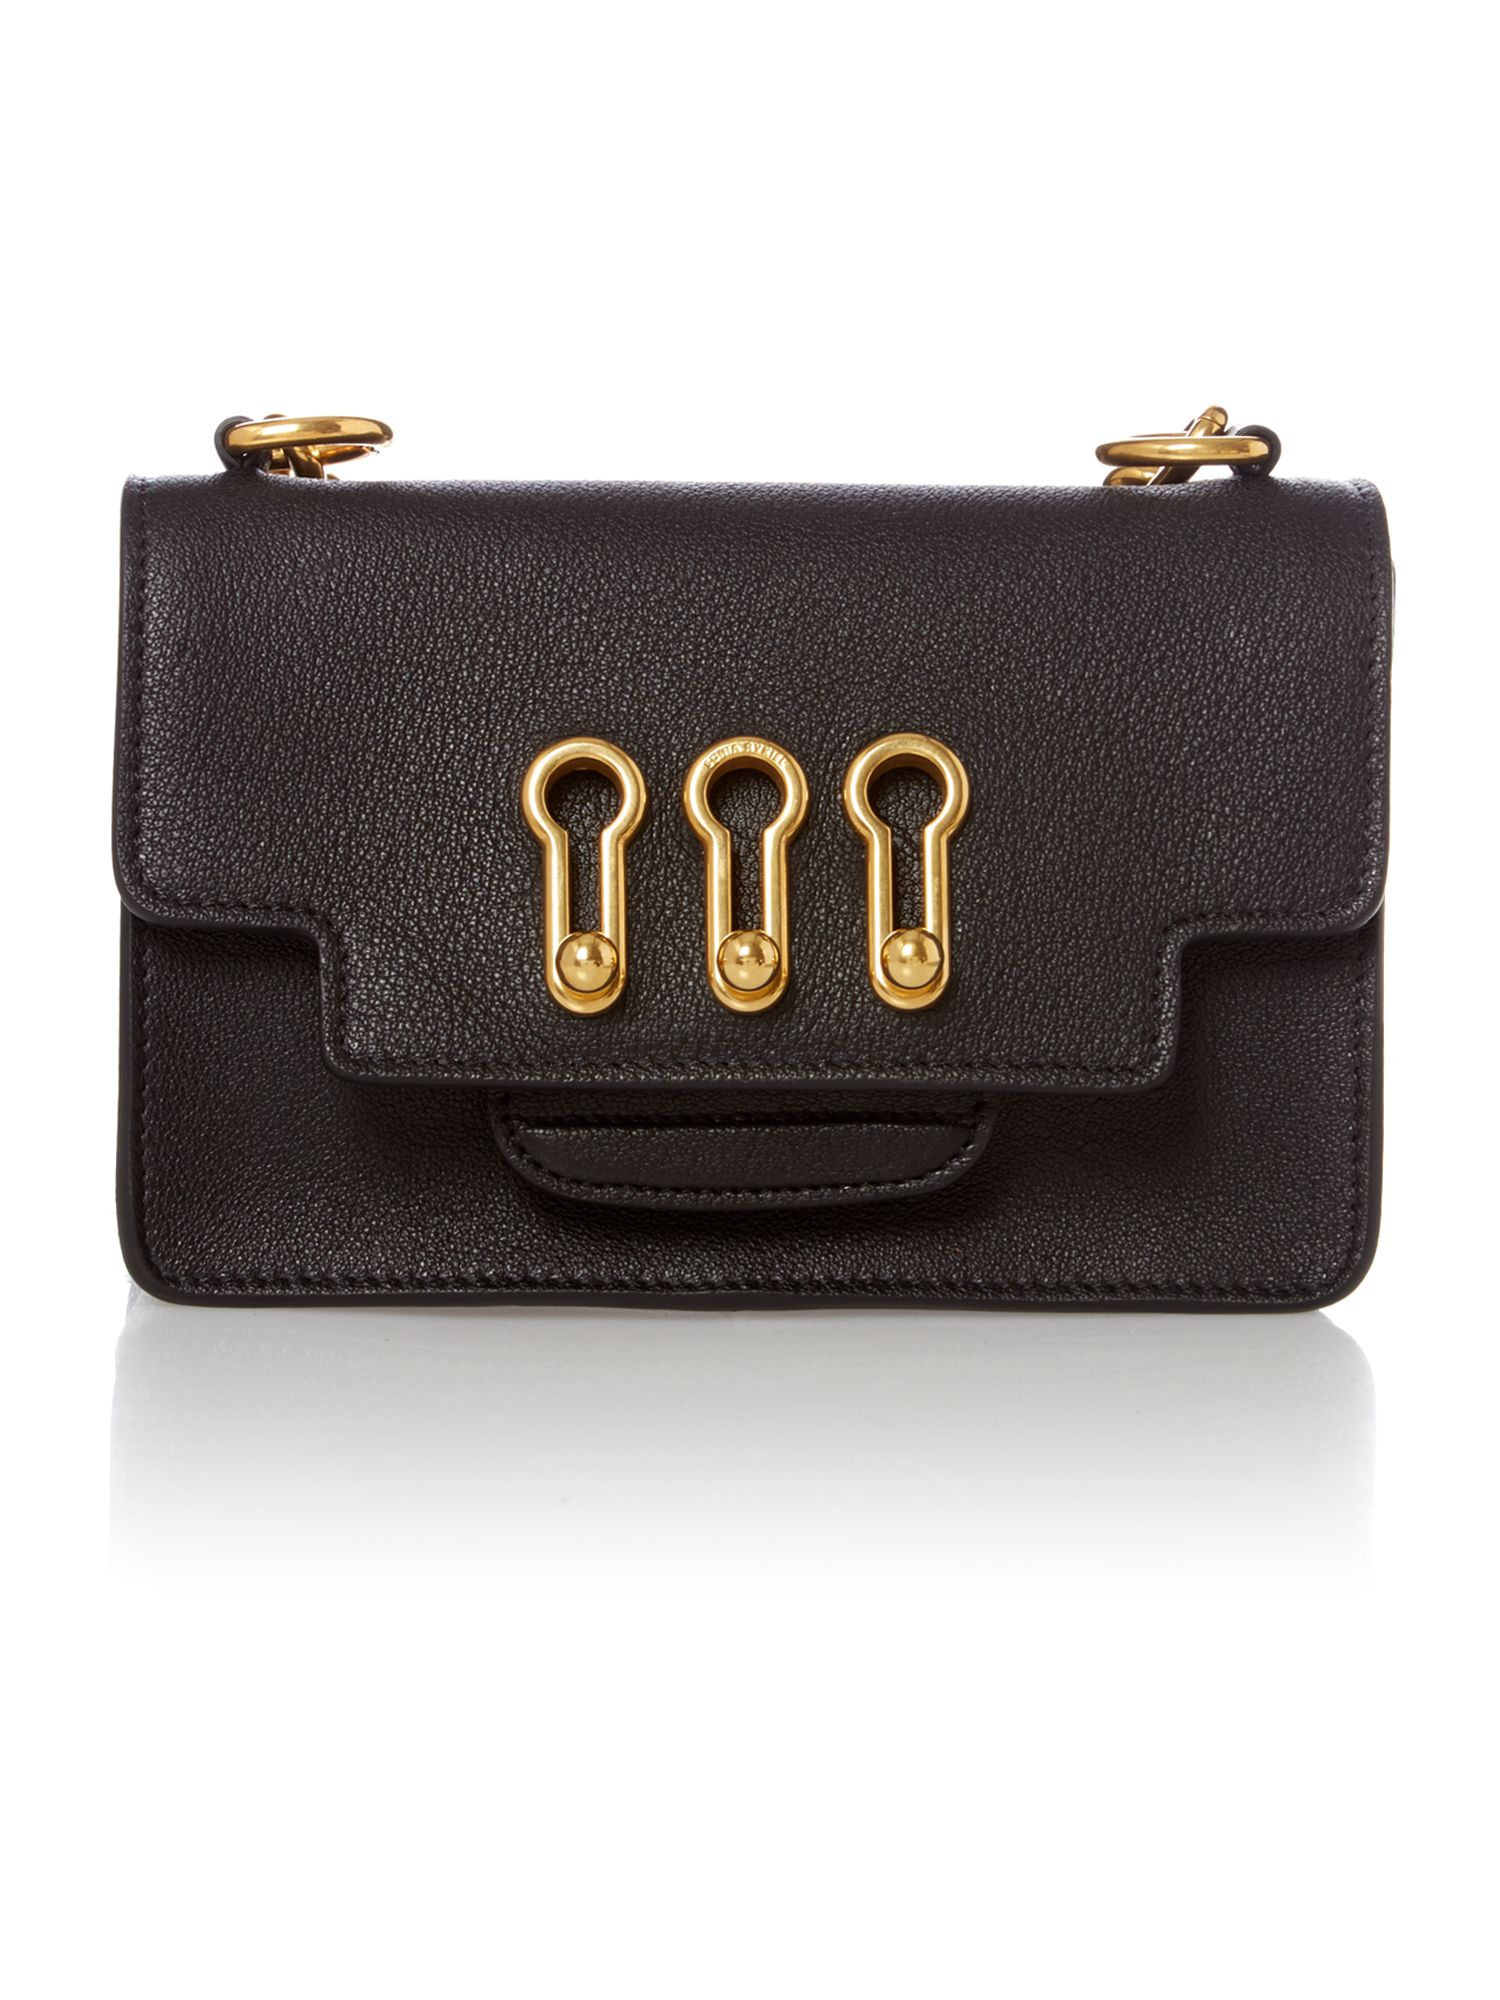 Grenelle black small crossbody bag